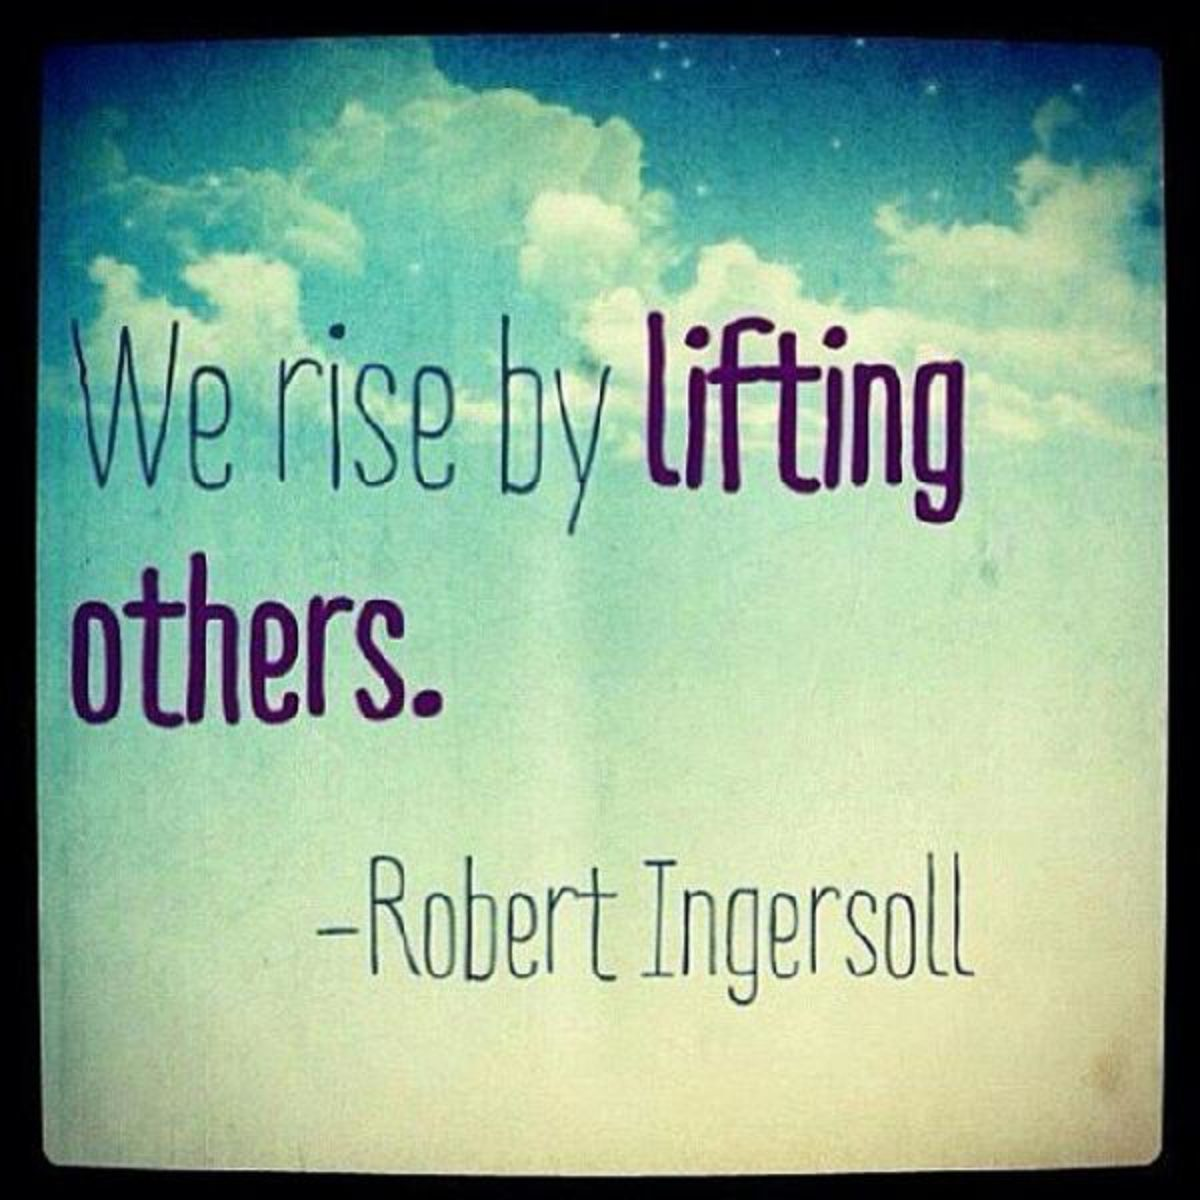 """We rise by liftinf others."" Robert Ingersoll. [1200×1200]"